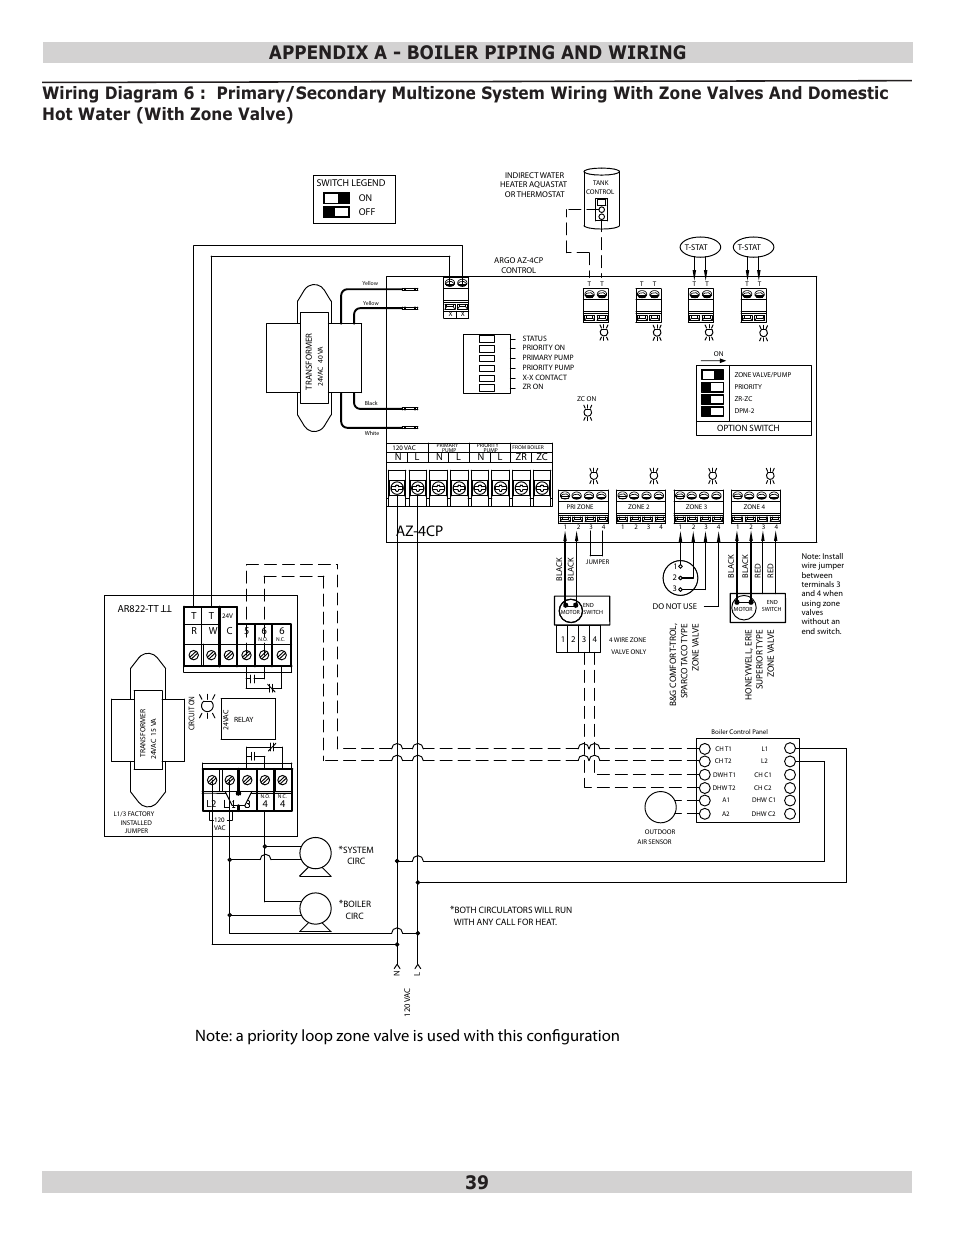 medium resolution of appendix a boiler piping and wiring 39 az 4cp dunkirk q95m